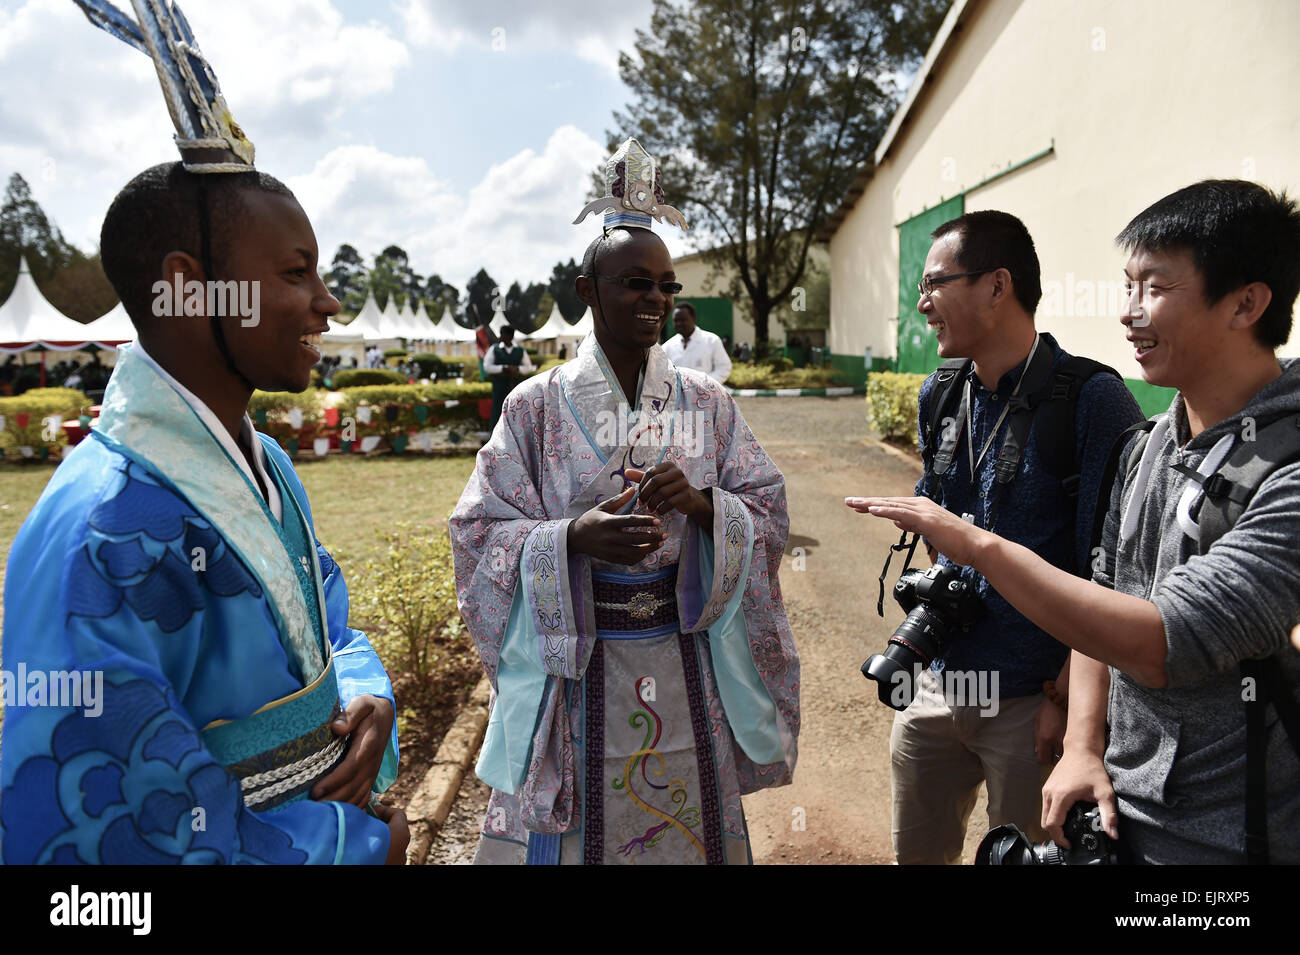 Eldoret, Kenya. 30th Mar, 2015. Kevin (1st L) and Dennis (2nd L), students of Moi University, chat with Chinese Stock Photo